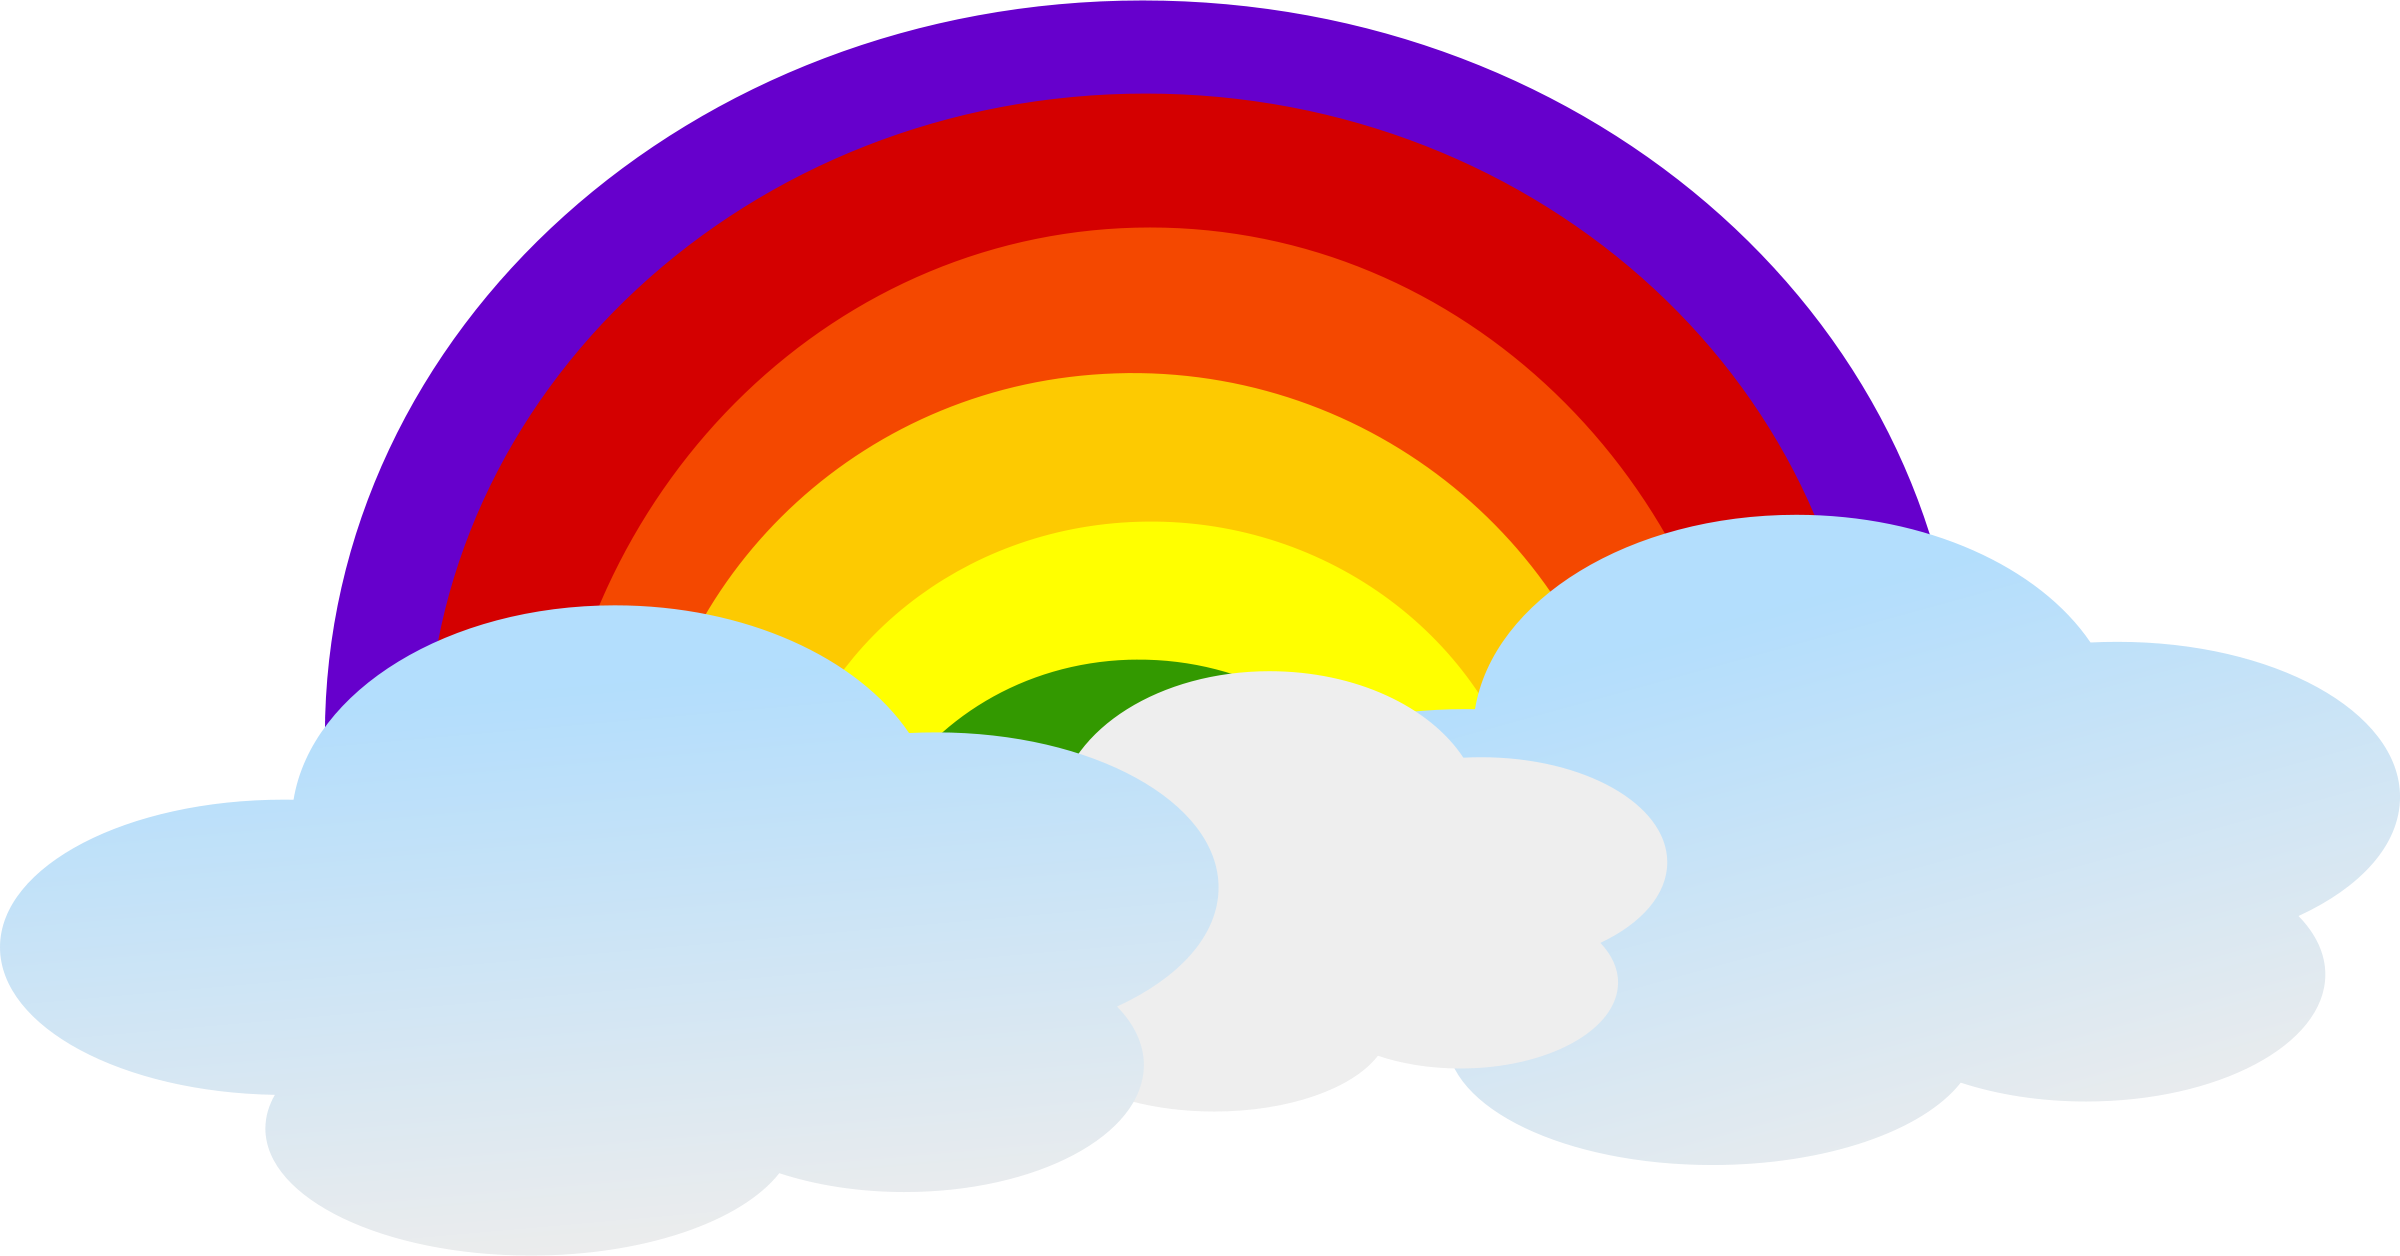 Clouds covering the sun clipart clip transparent download Свързано изображение | Transparent Decoration PNG Picture ... clip transparent download